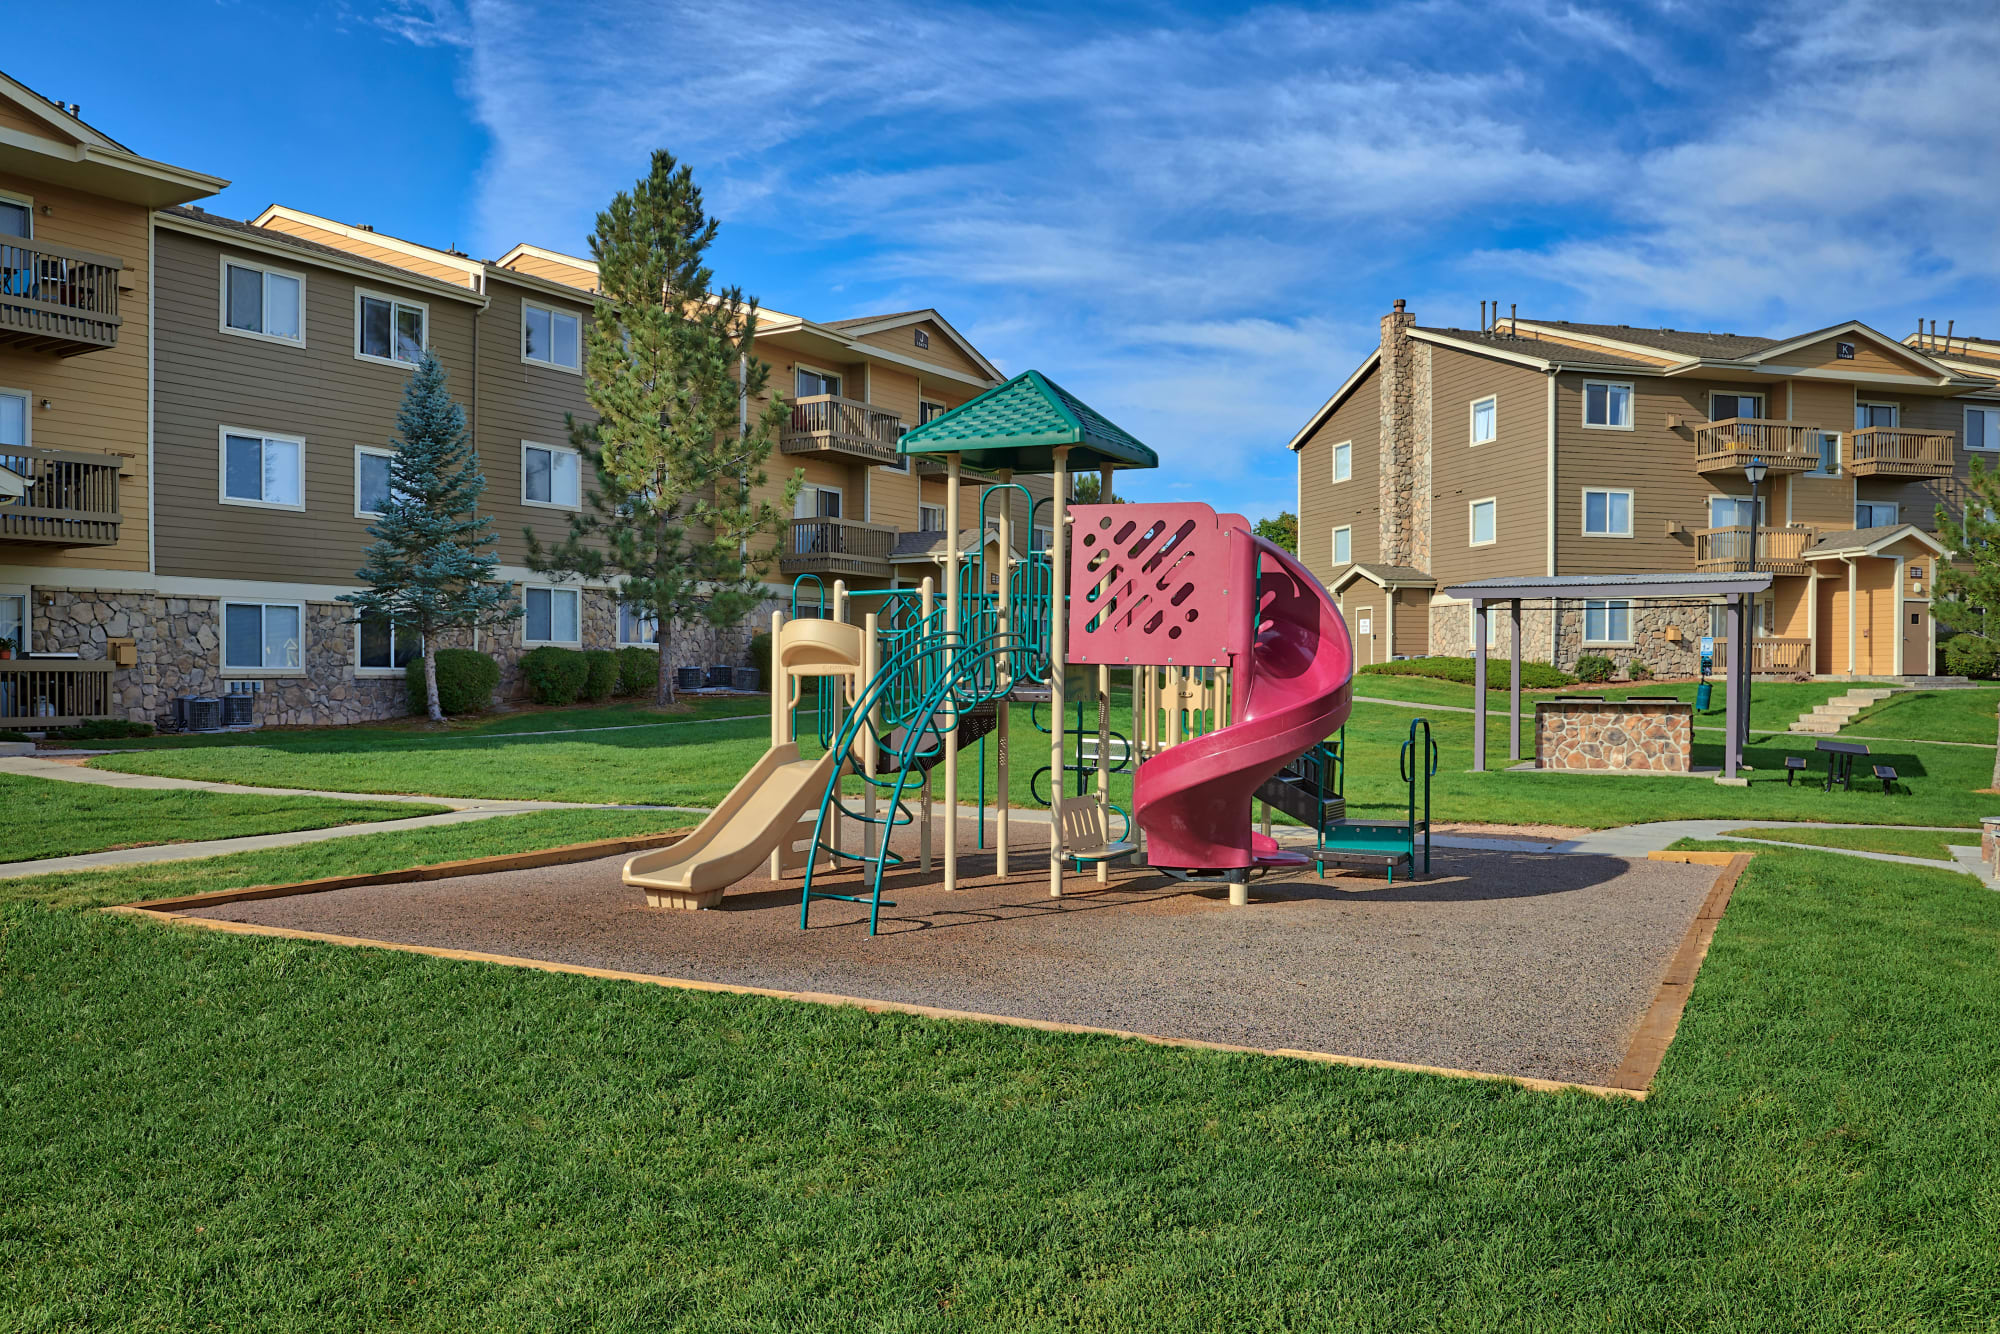 Playground at Crossroads at City Center Apartments in Aurora, Colorado